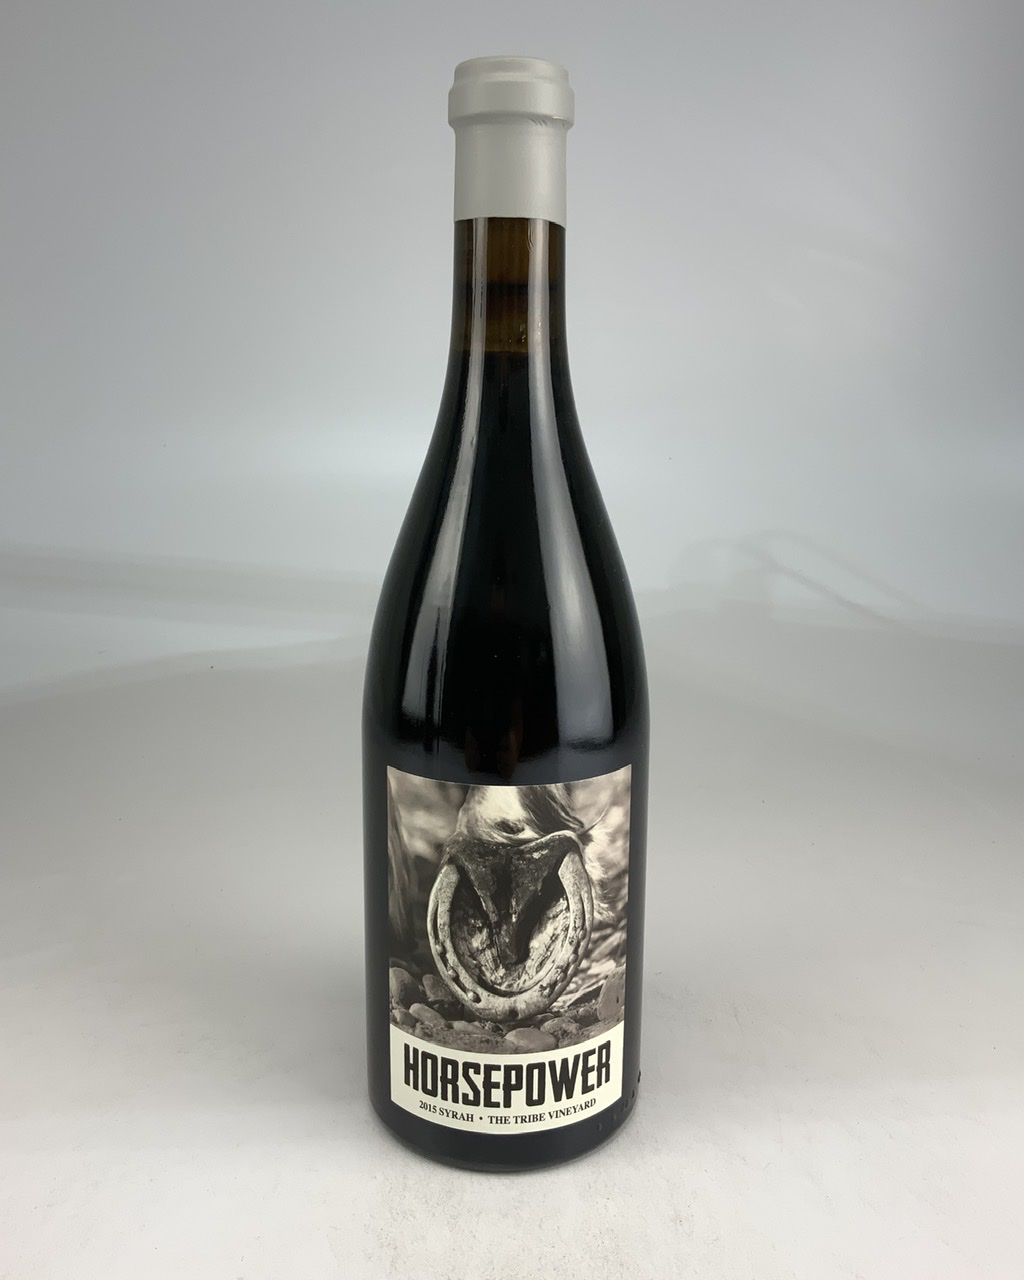 2015 Horsepower The Tribe Vineyard Syrah, Walla Walla Valley RP--98